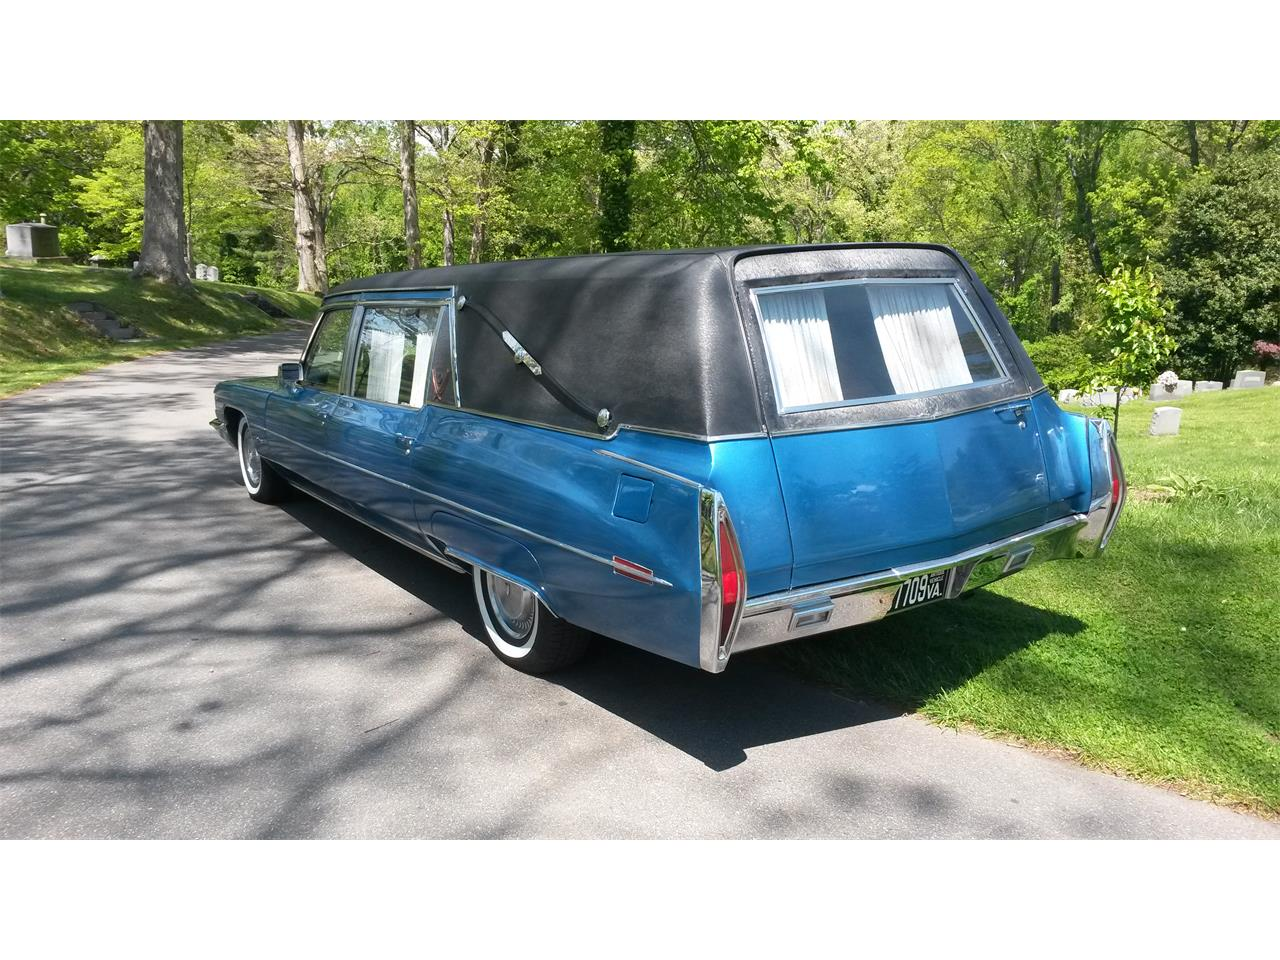 For Sale: 1972 Cadillac Hearse in Palmdale, California